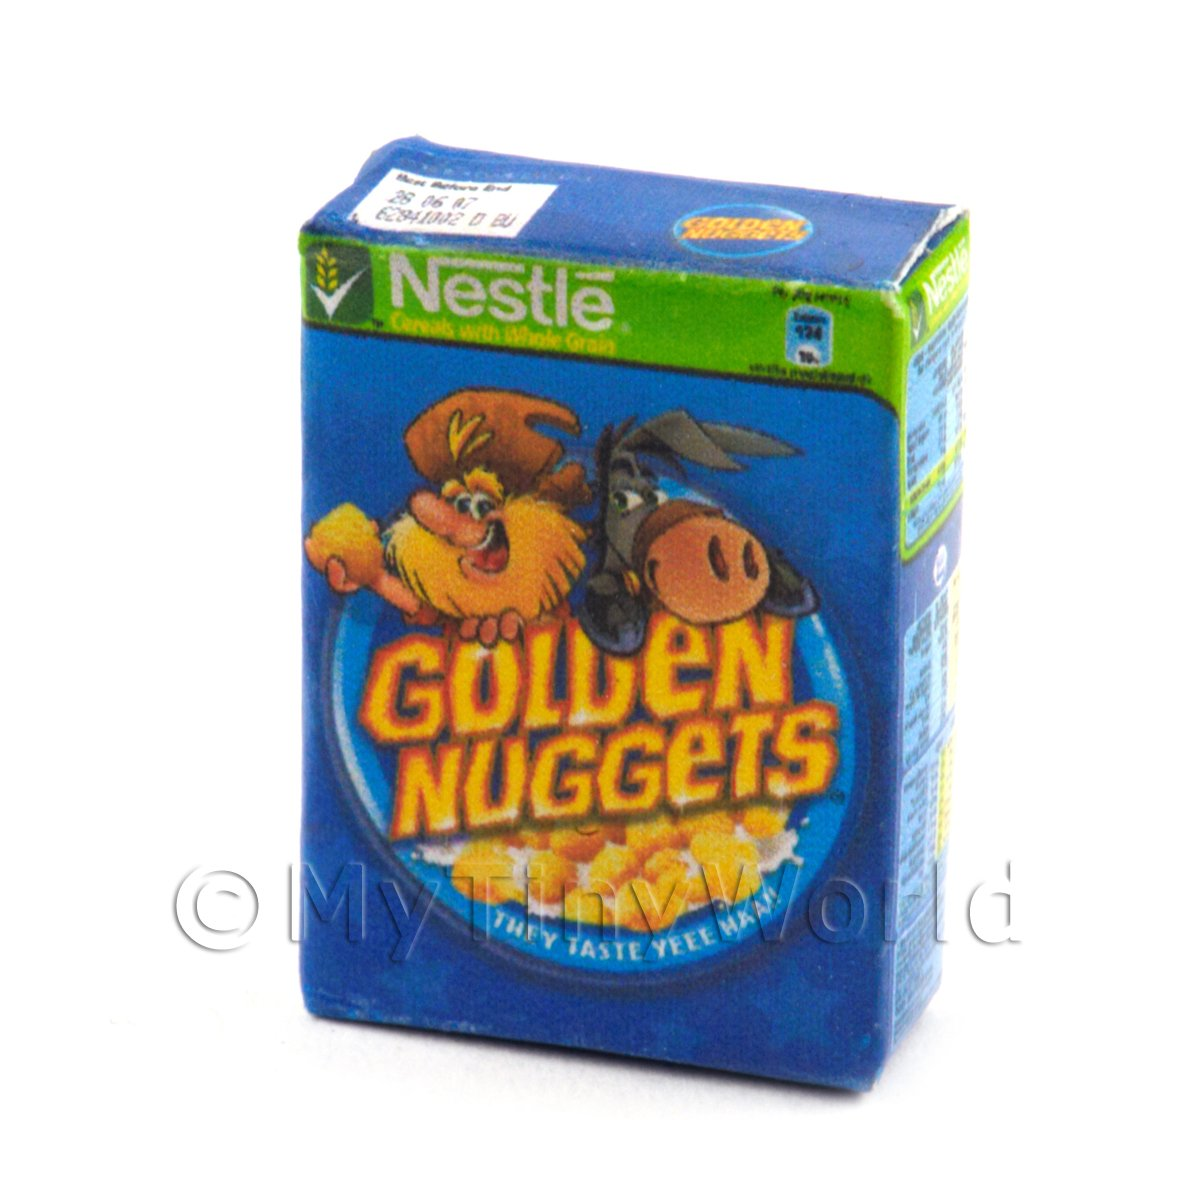 Dolls House Miniature Box of Nestle Golden Nuggets